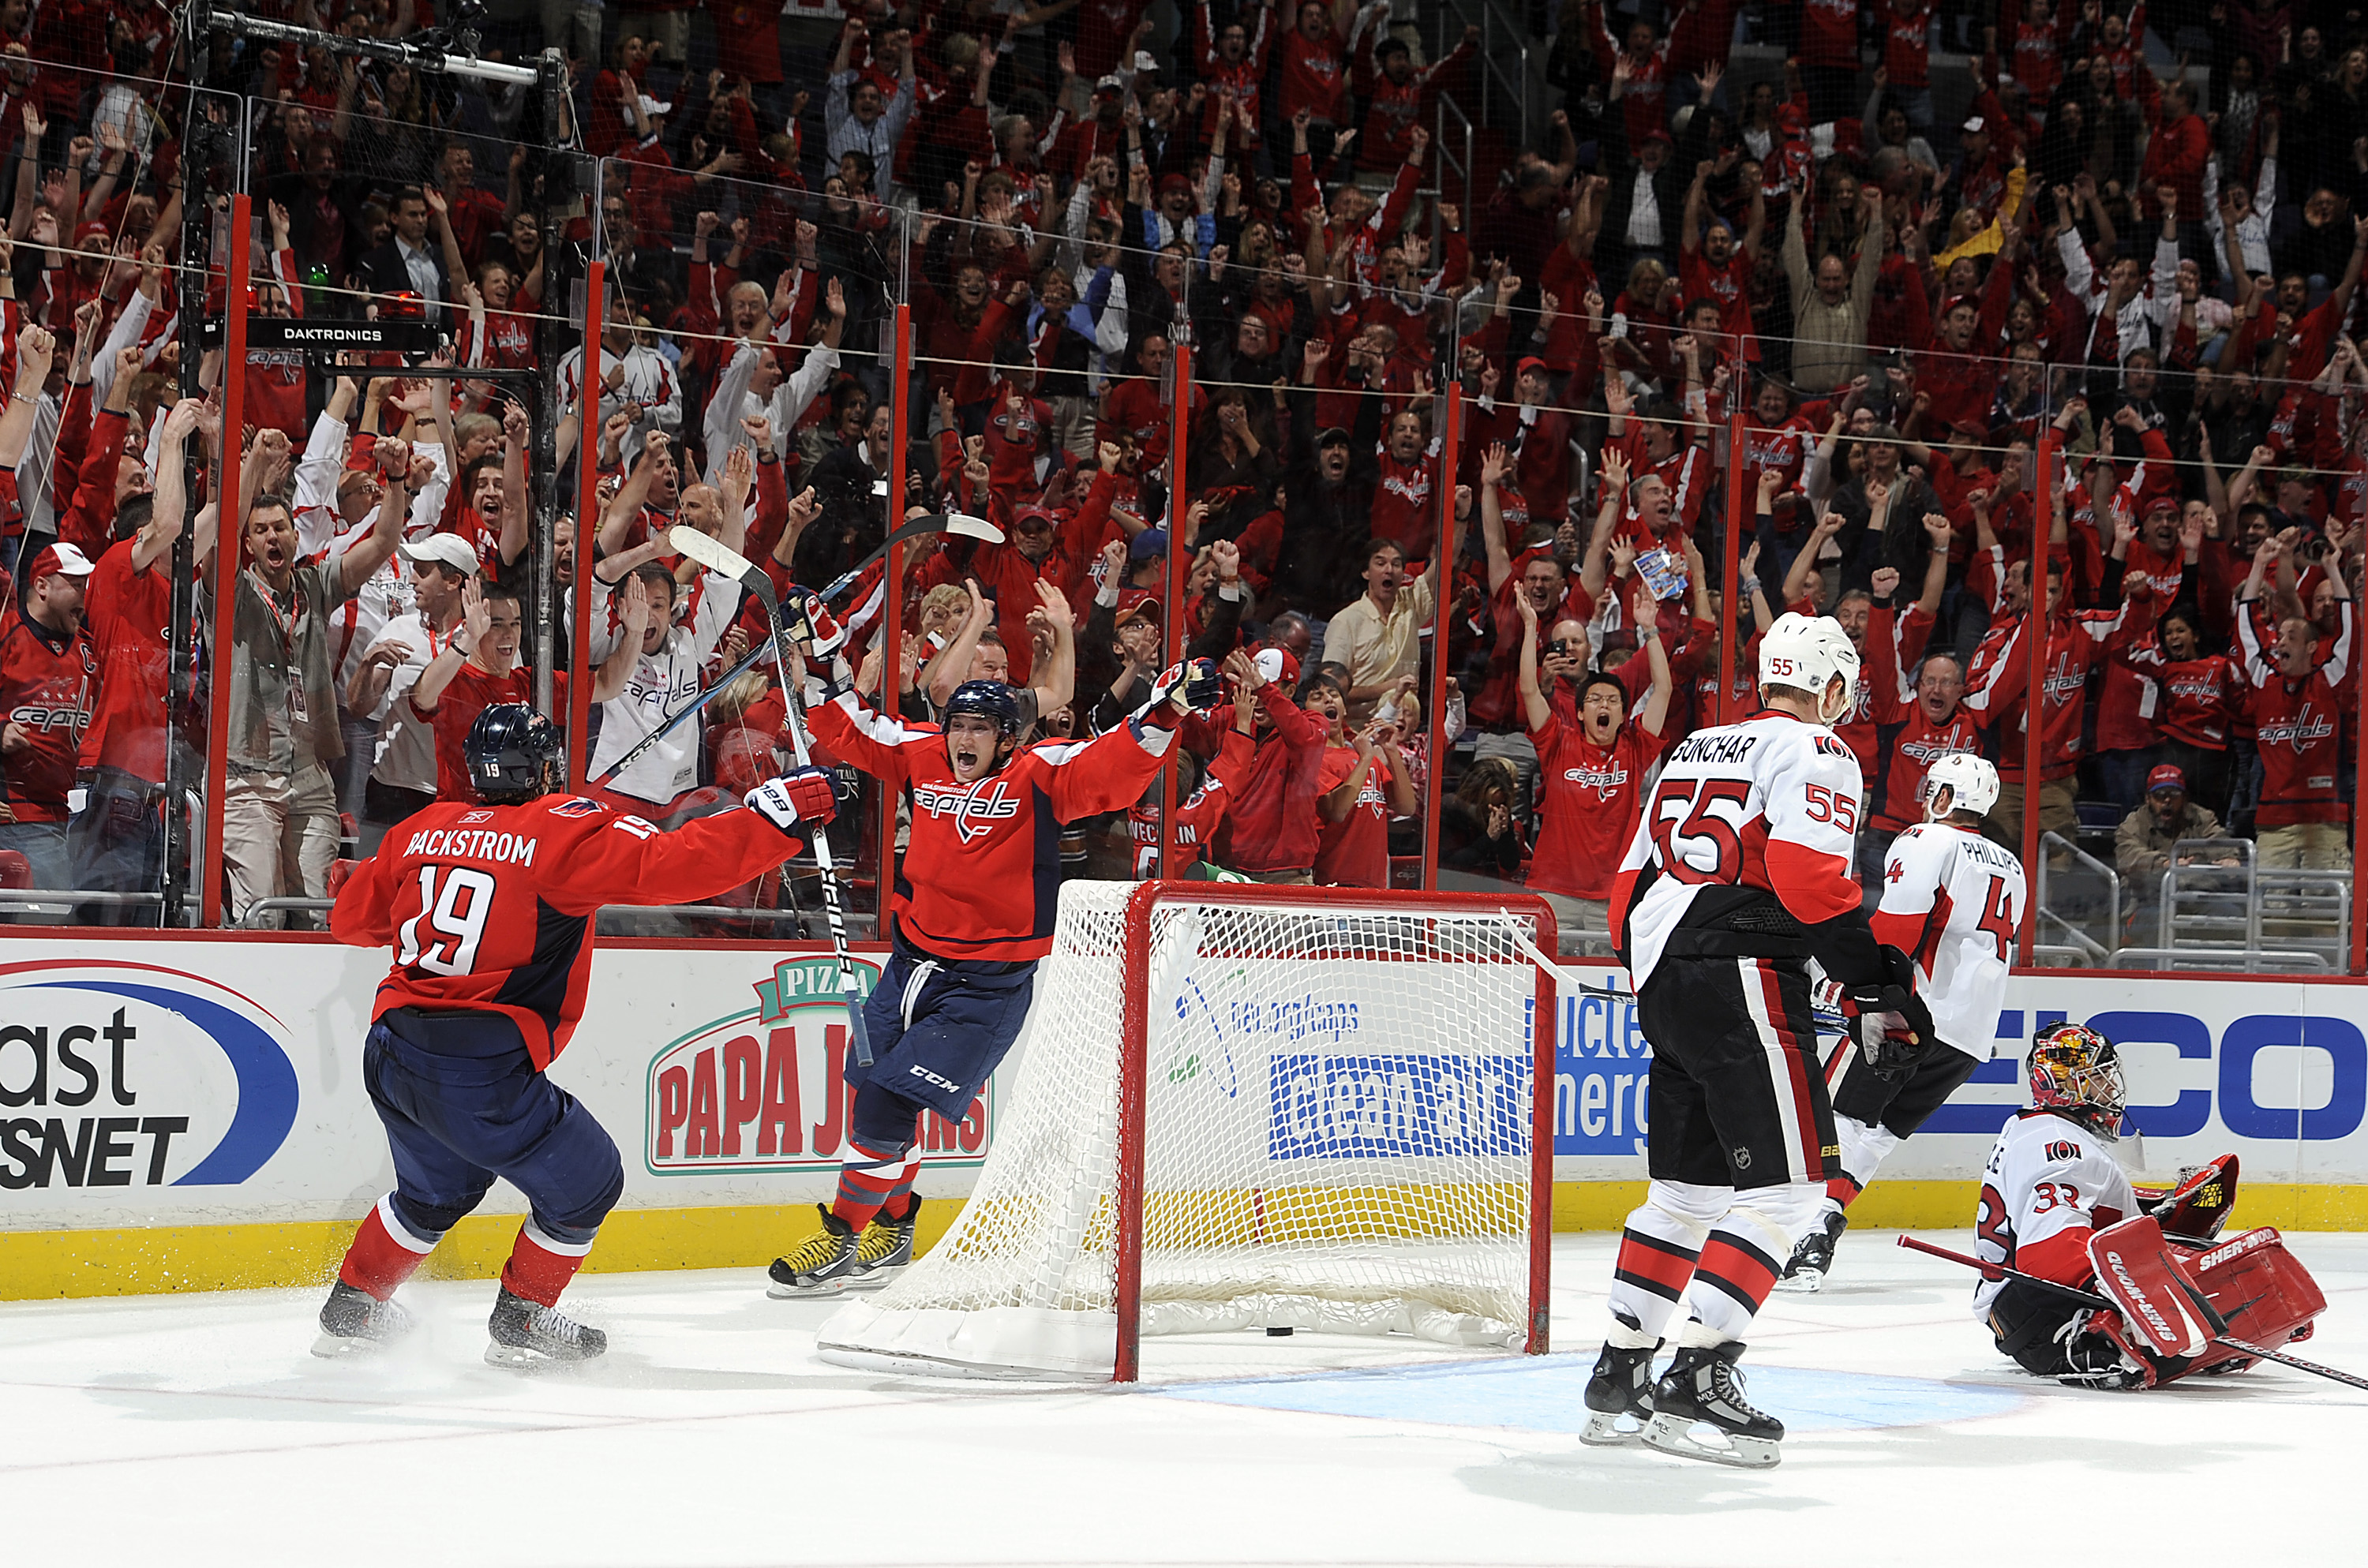 WASHINGTON - OCTOBER 11:  Alex Ovechkin #8 of the Washington Capitals celebrates with Nicklas Backstrom #19 after scoring the winning goal in overtime against Pascal Leclaire #33 of the Ottawa Senators at the Verizon Center on October 11, 2010 in Washingt